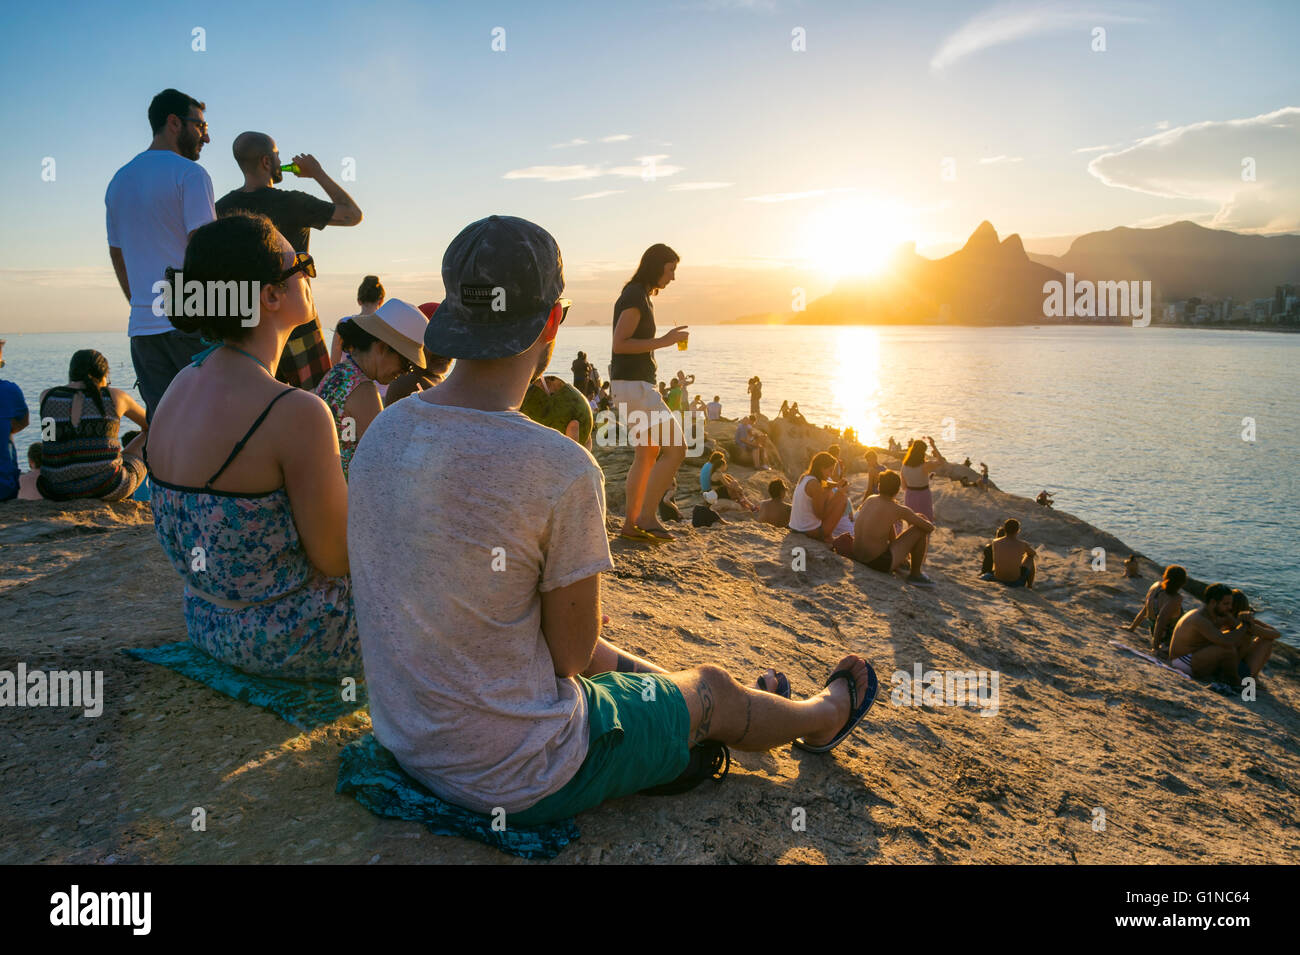 RIO DE JANEIRO - FEBRUARY 26, 2016: Crowds of people gather to watch the sunset on the rocks at Arpoador, a popular - Stock Image